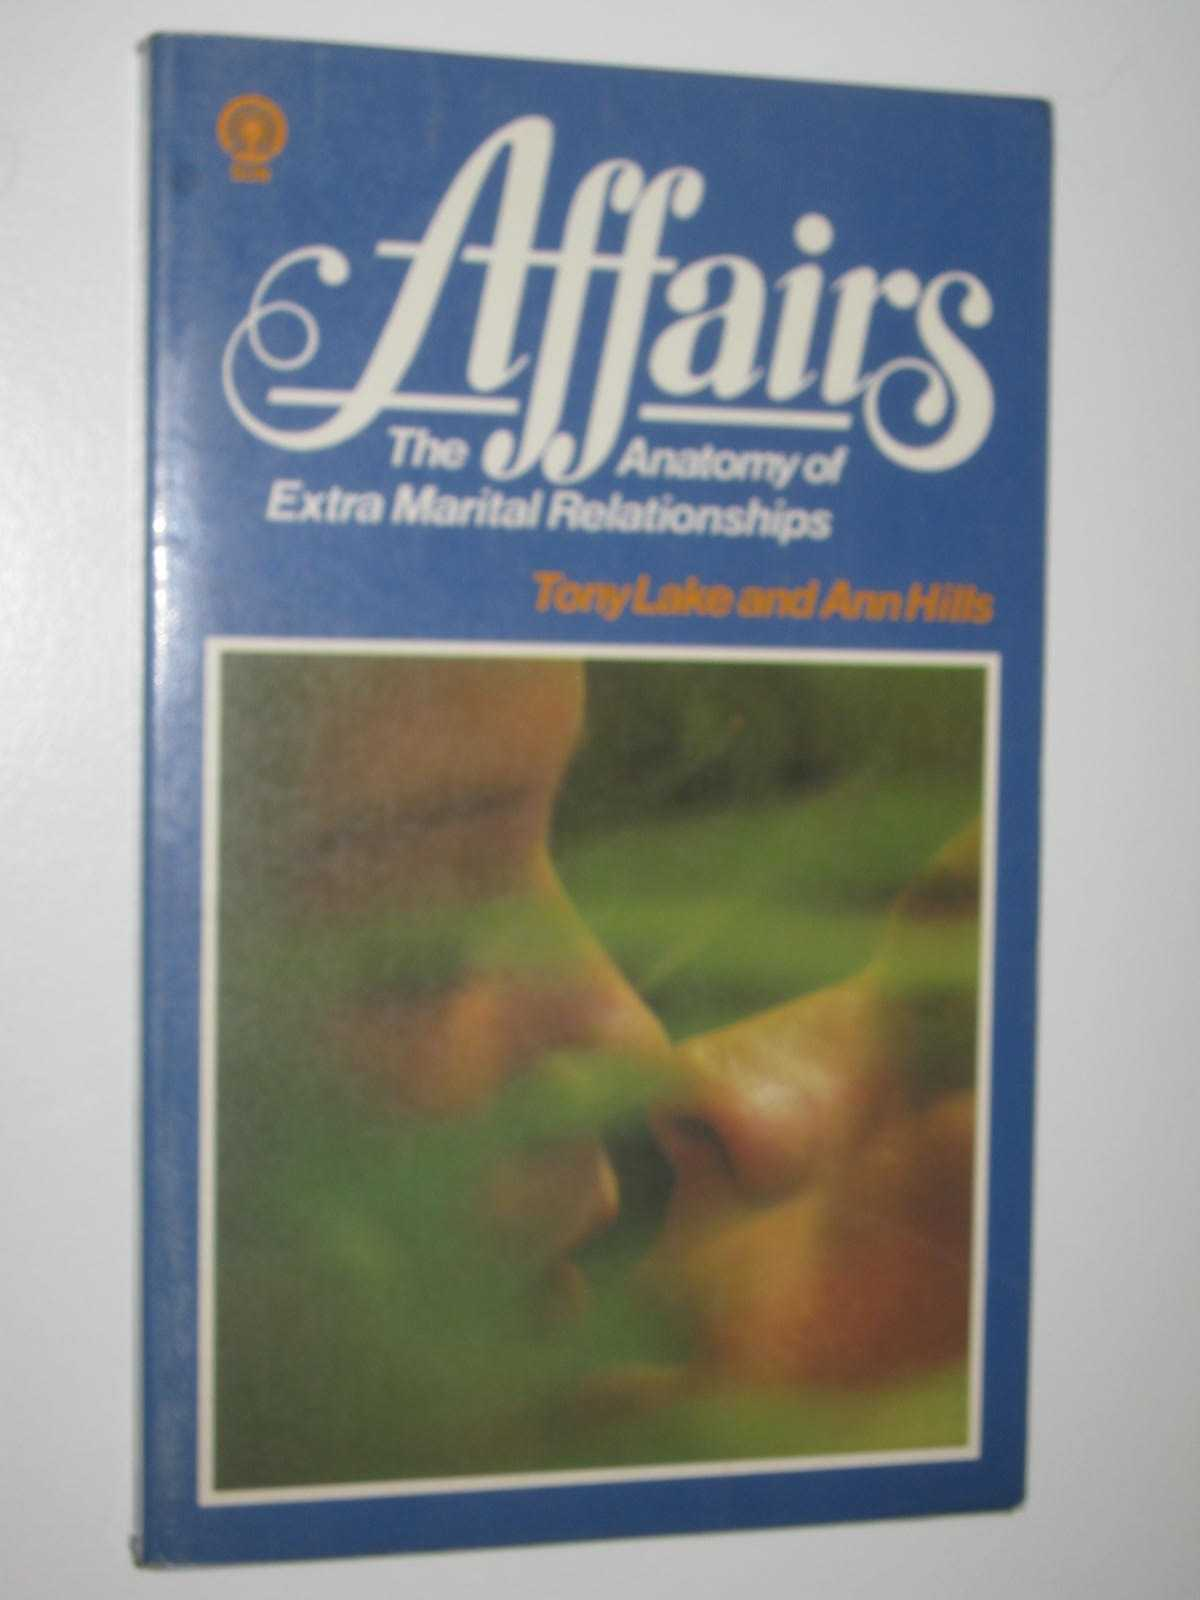 Image for Affairs : The Anatomy of Extra Marital Relationships